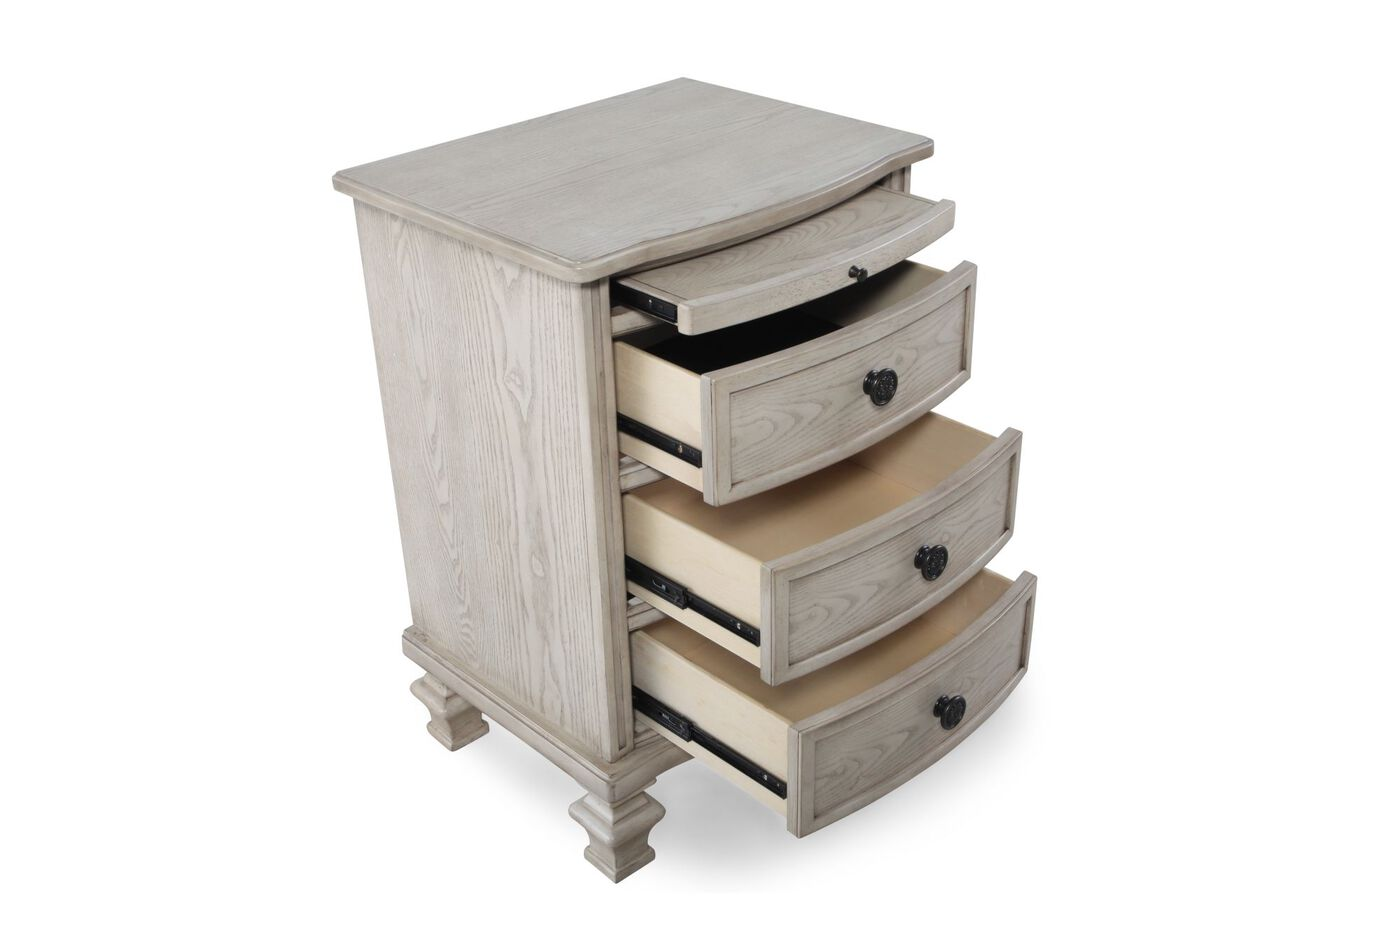 Ashley Demarlos Night Table Mathis Brothers Furniture : ASH B69304793 1 from www.mathisbrothers.com size 1400 x 933 jpeg 68kB